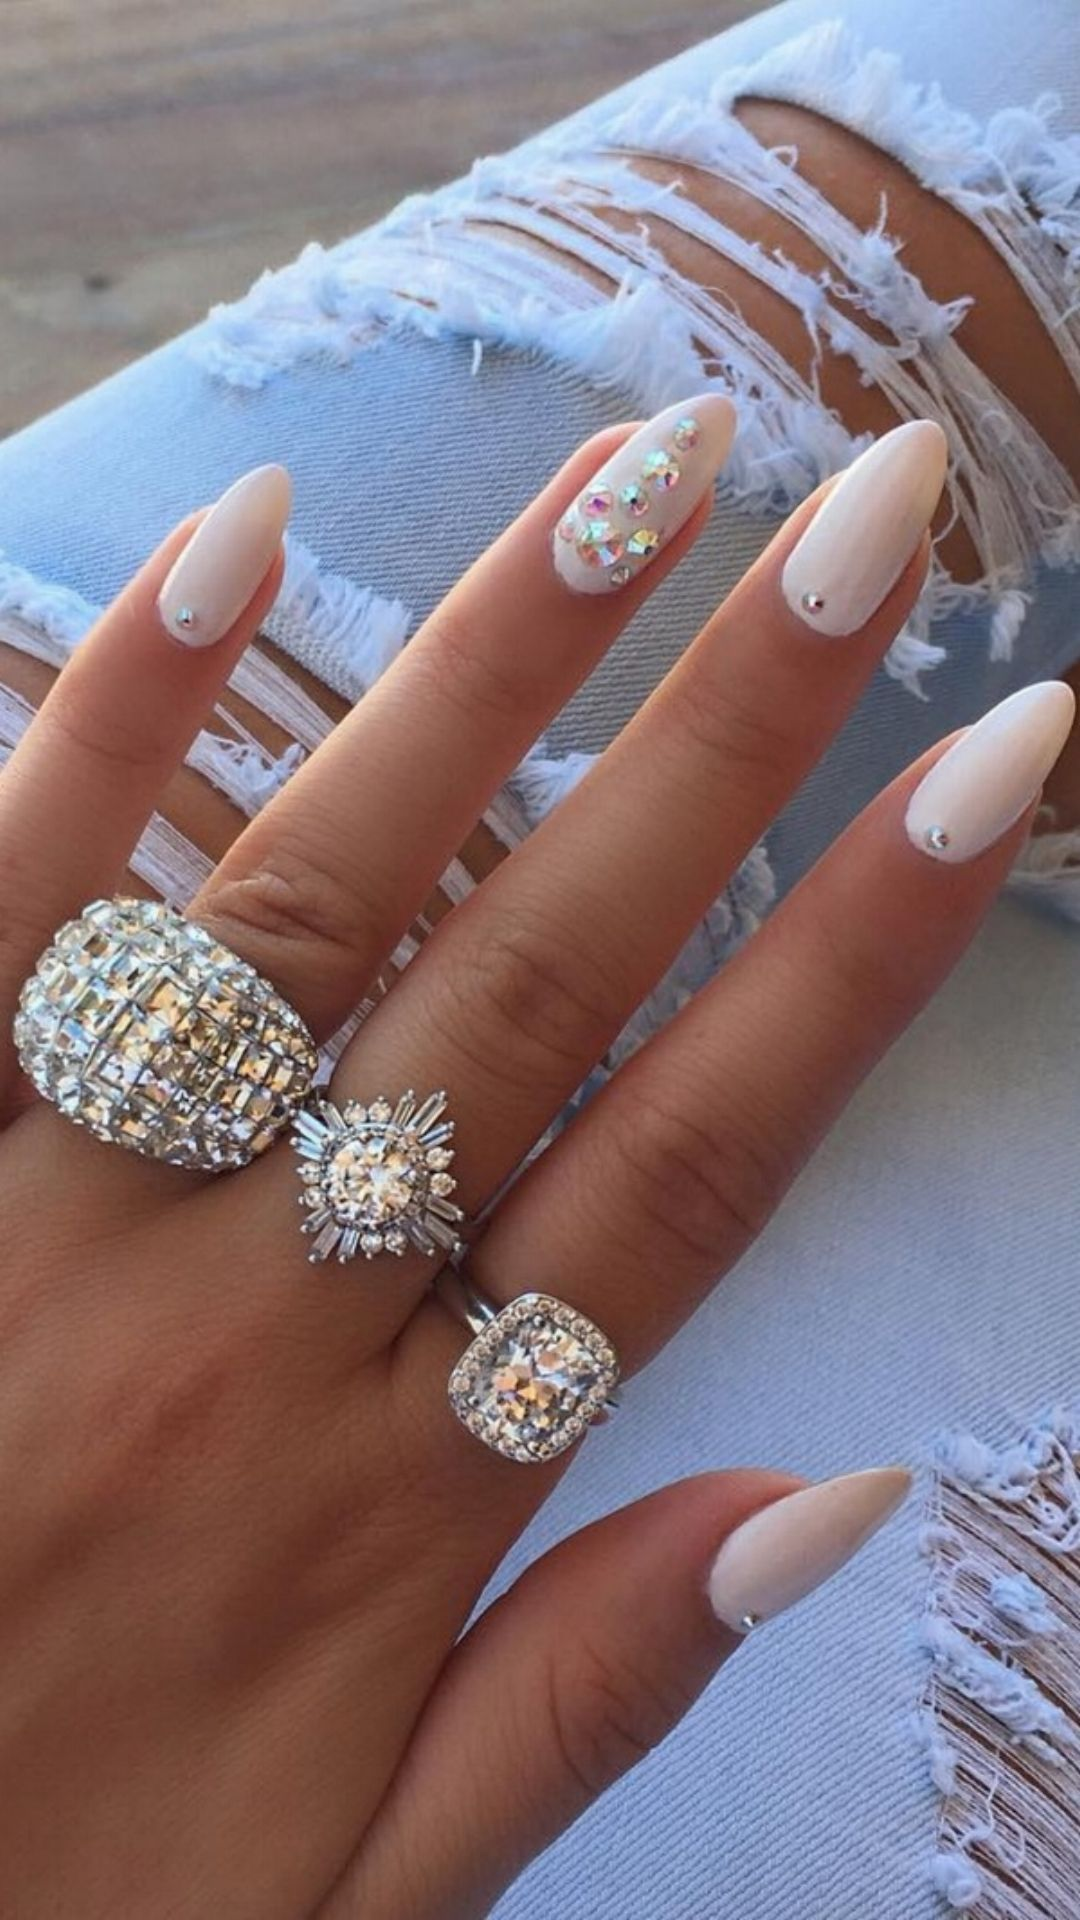 White Nails For Greece Whitenails Nails Notd Swarovskicrystals Realnails Mynails Rings Bling Like Je Classic Nails Nail Jewelry Nail Art Designs